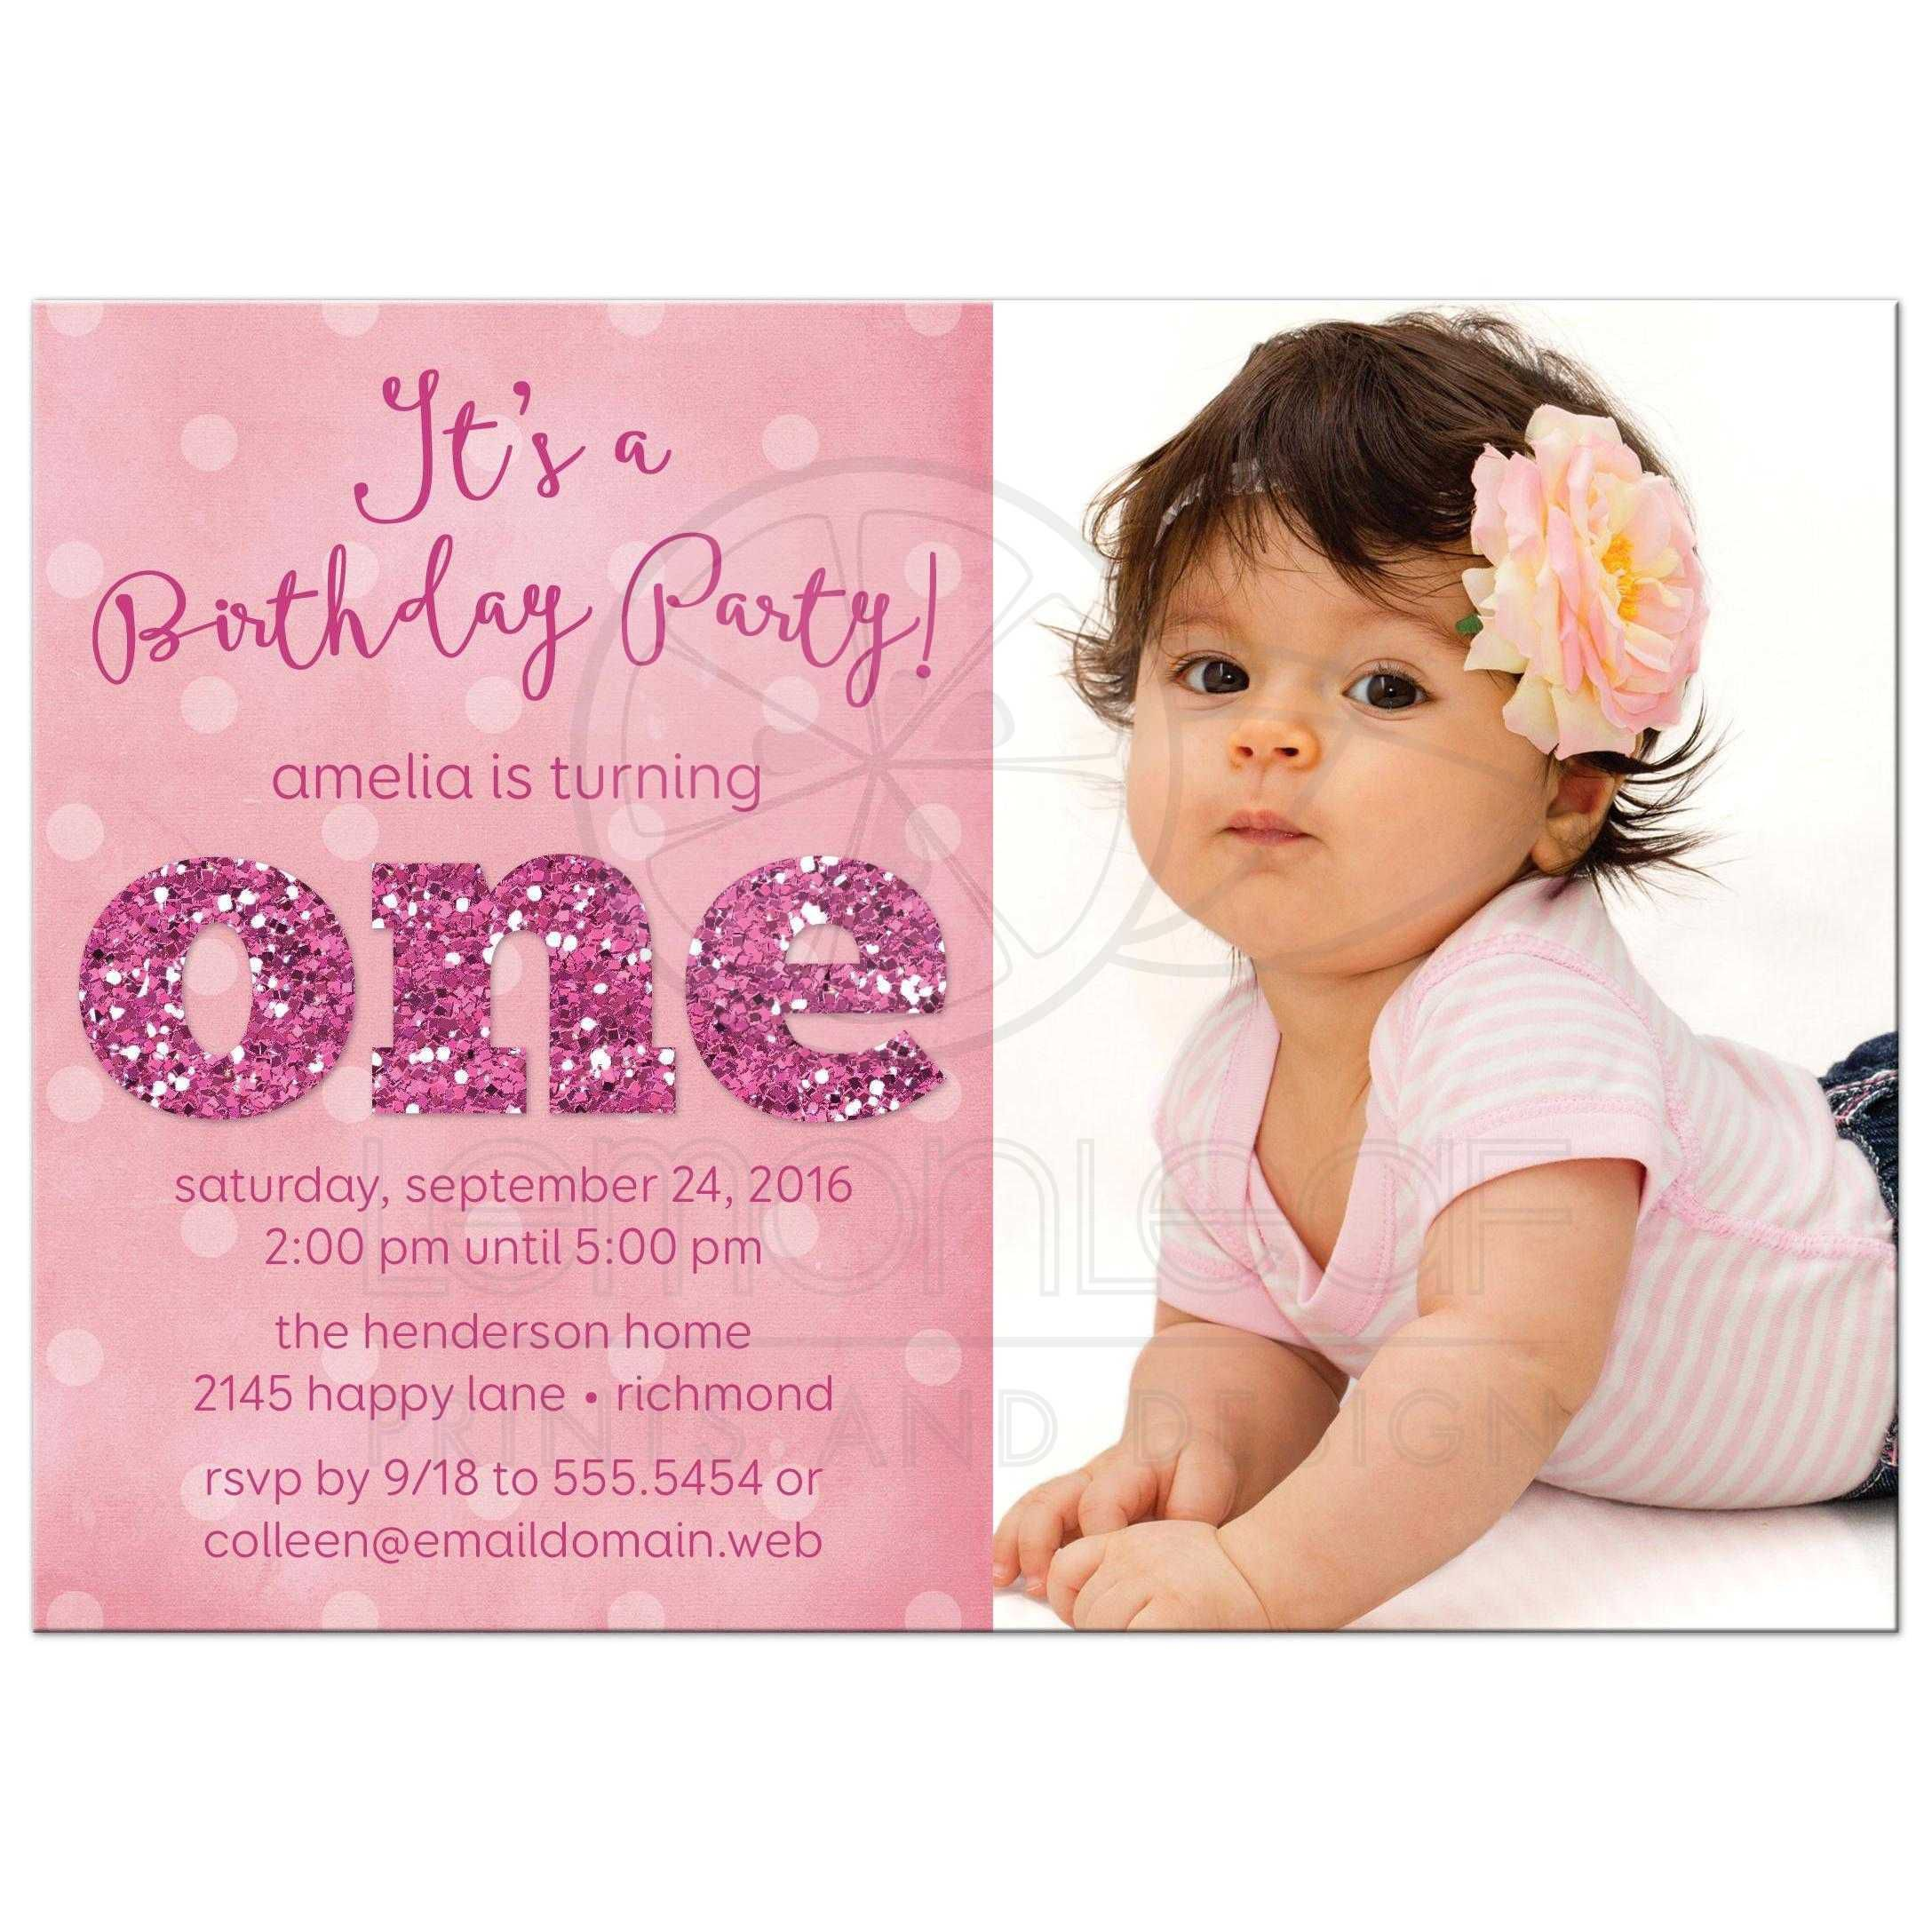 Combined christening and 1st birthday invitations 1st birthday and christening invitation wording baptism stopboris Gallery